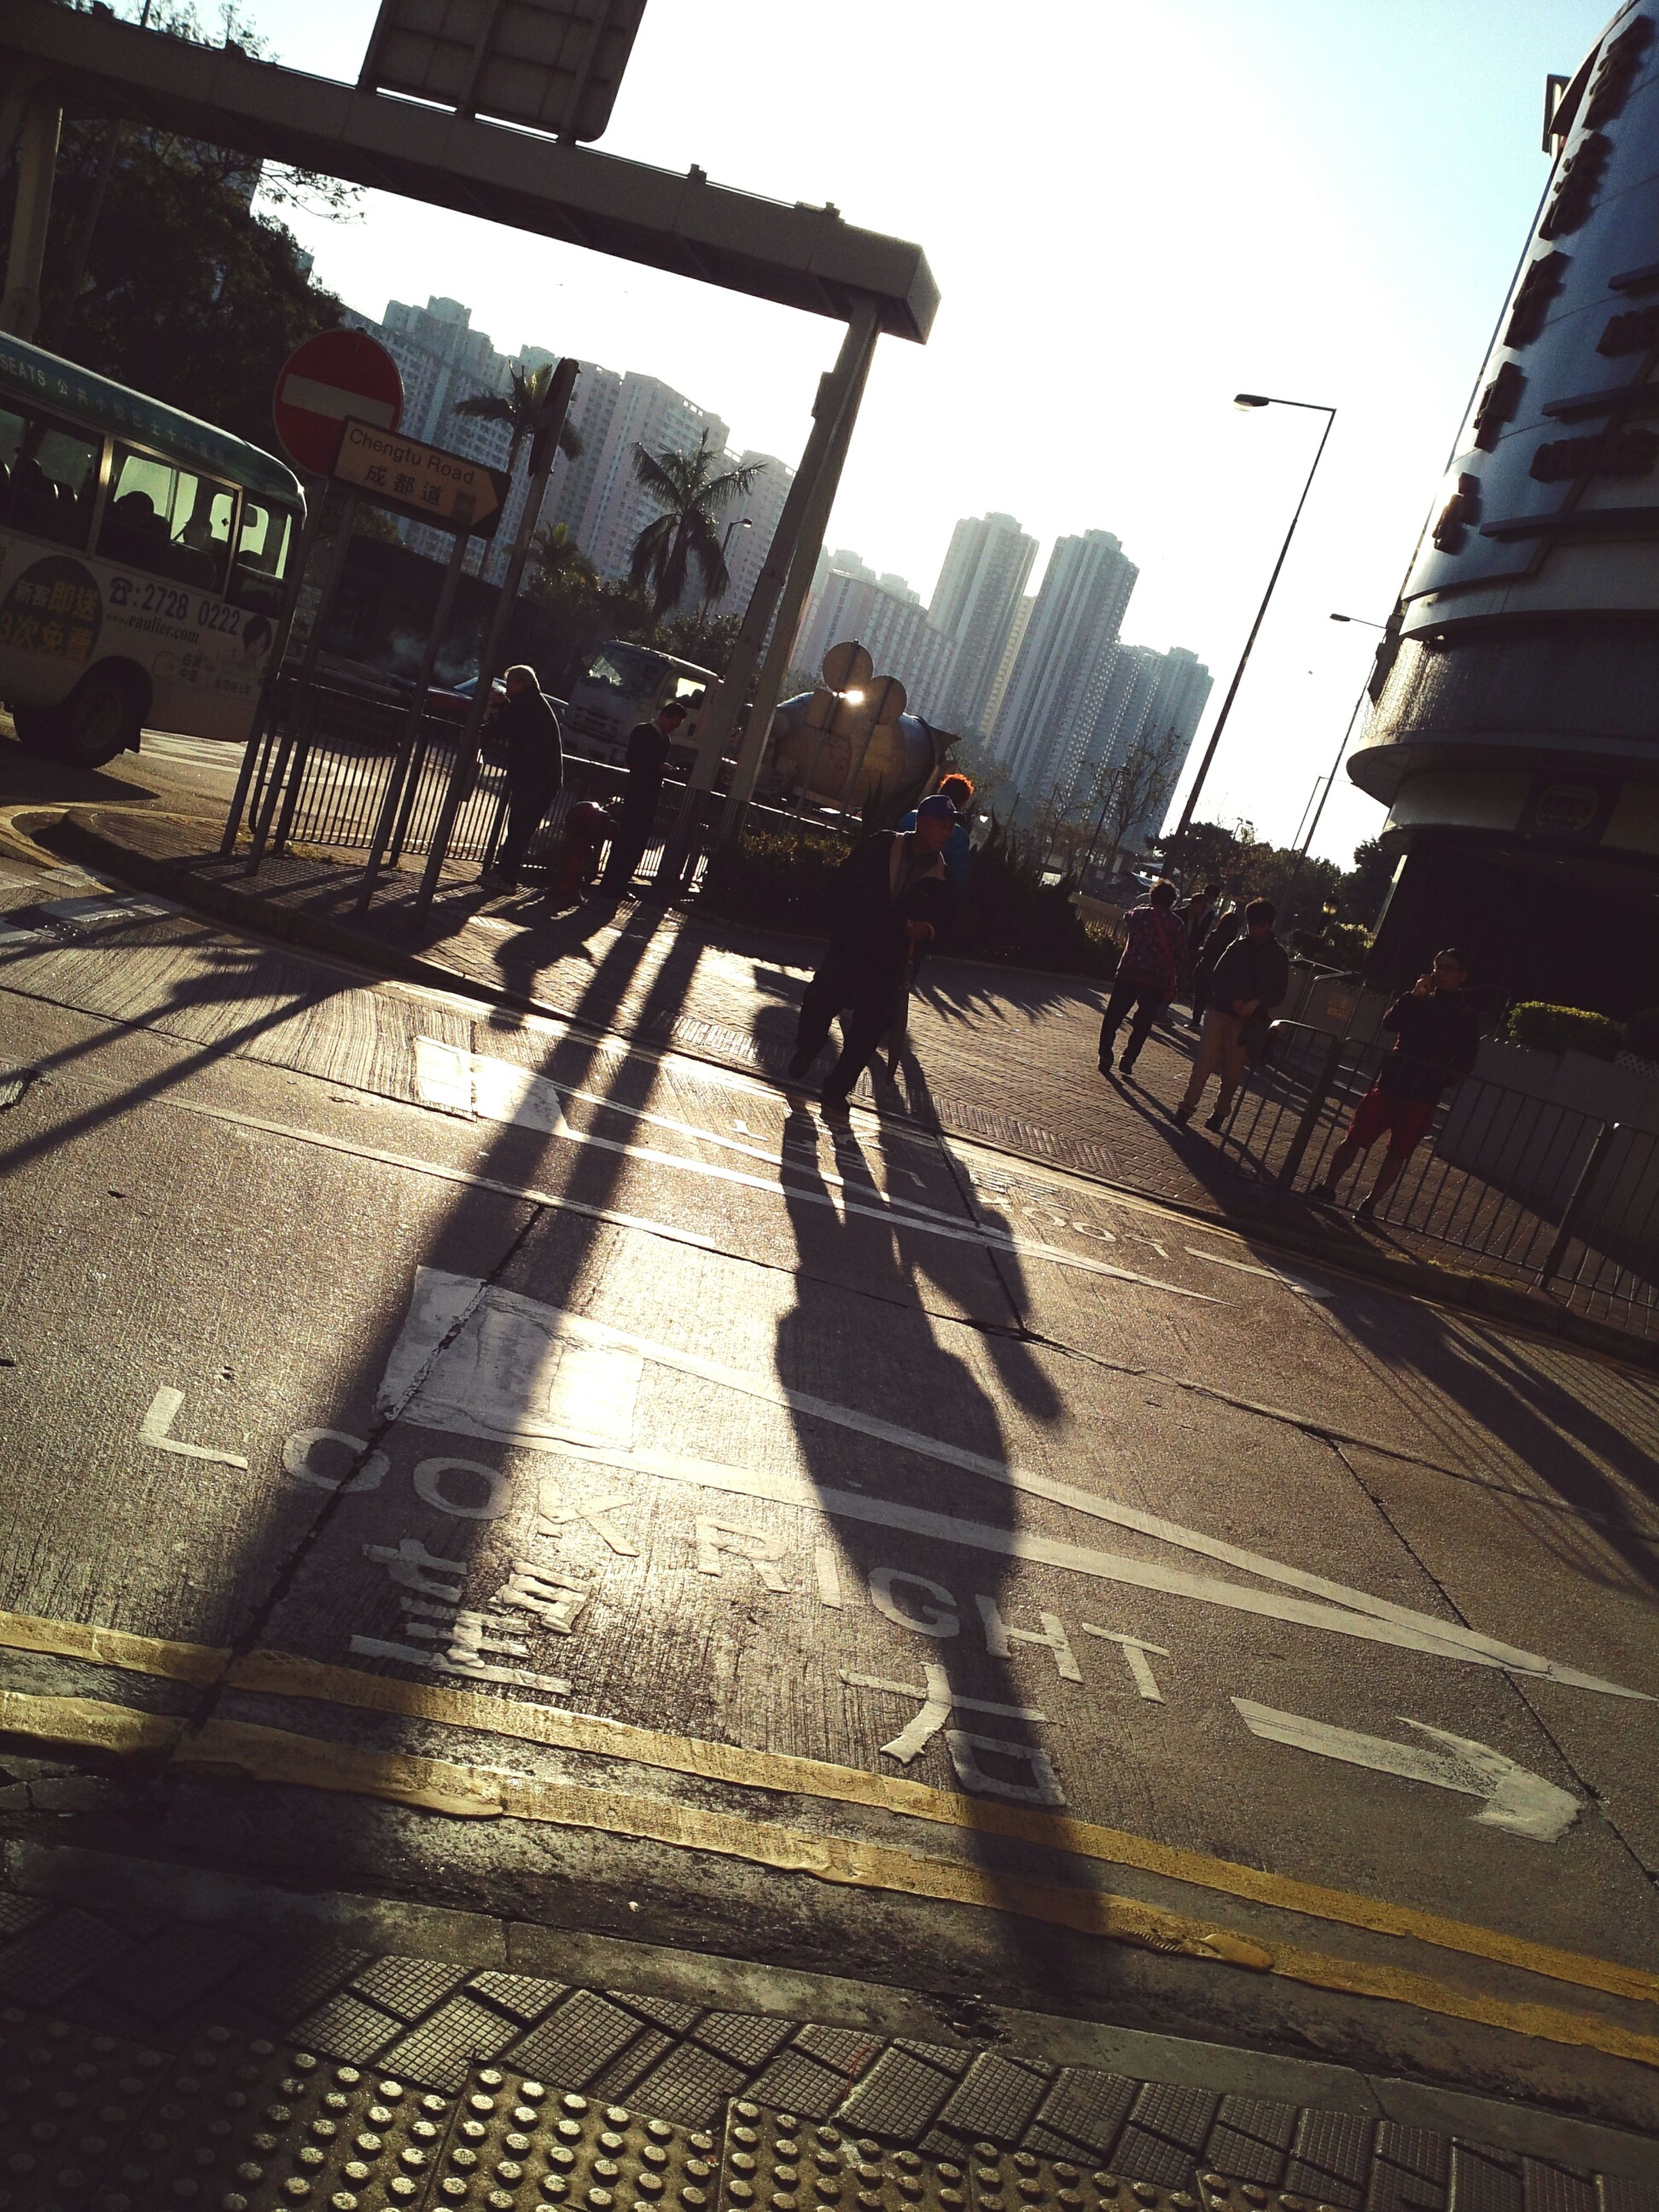 shadow, built structure, architecture, building exterior, sunlight, silhouette, city, lifestyles, men, walking, street, low angle view, leisure activity, city life, sky, unrecognizable person, sunny, person